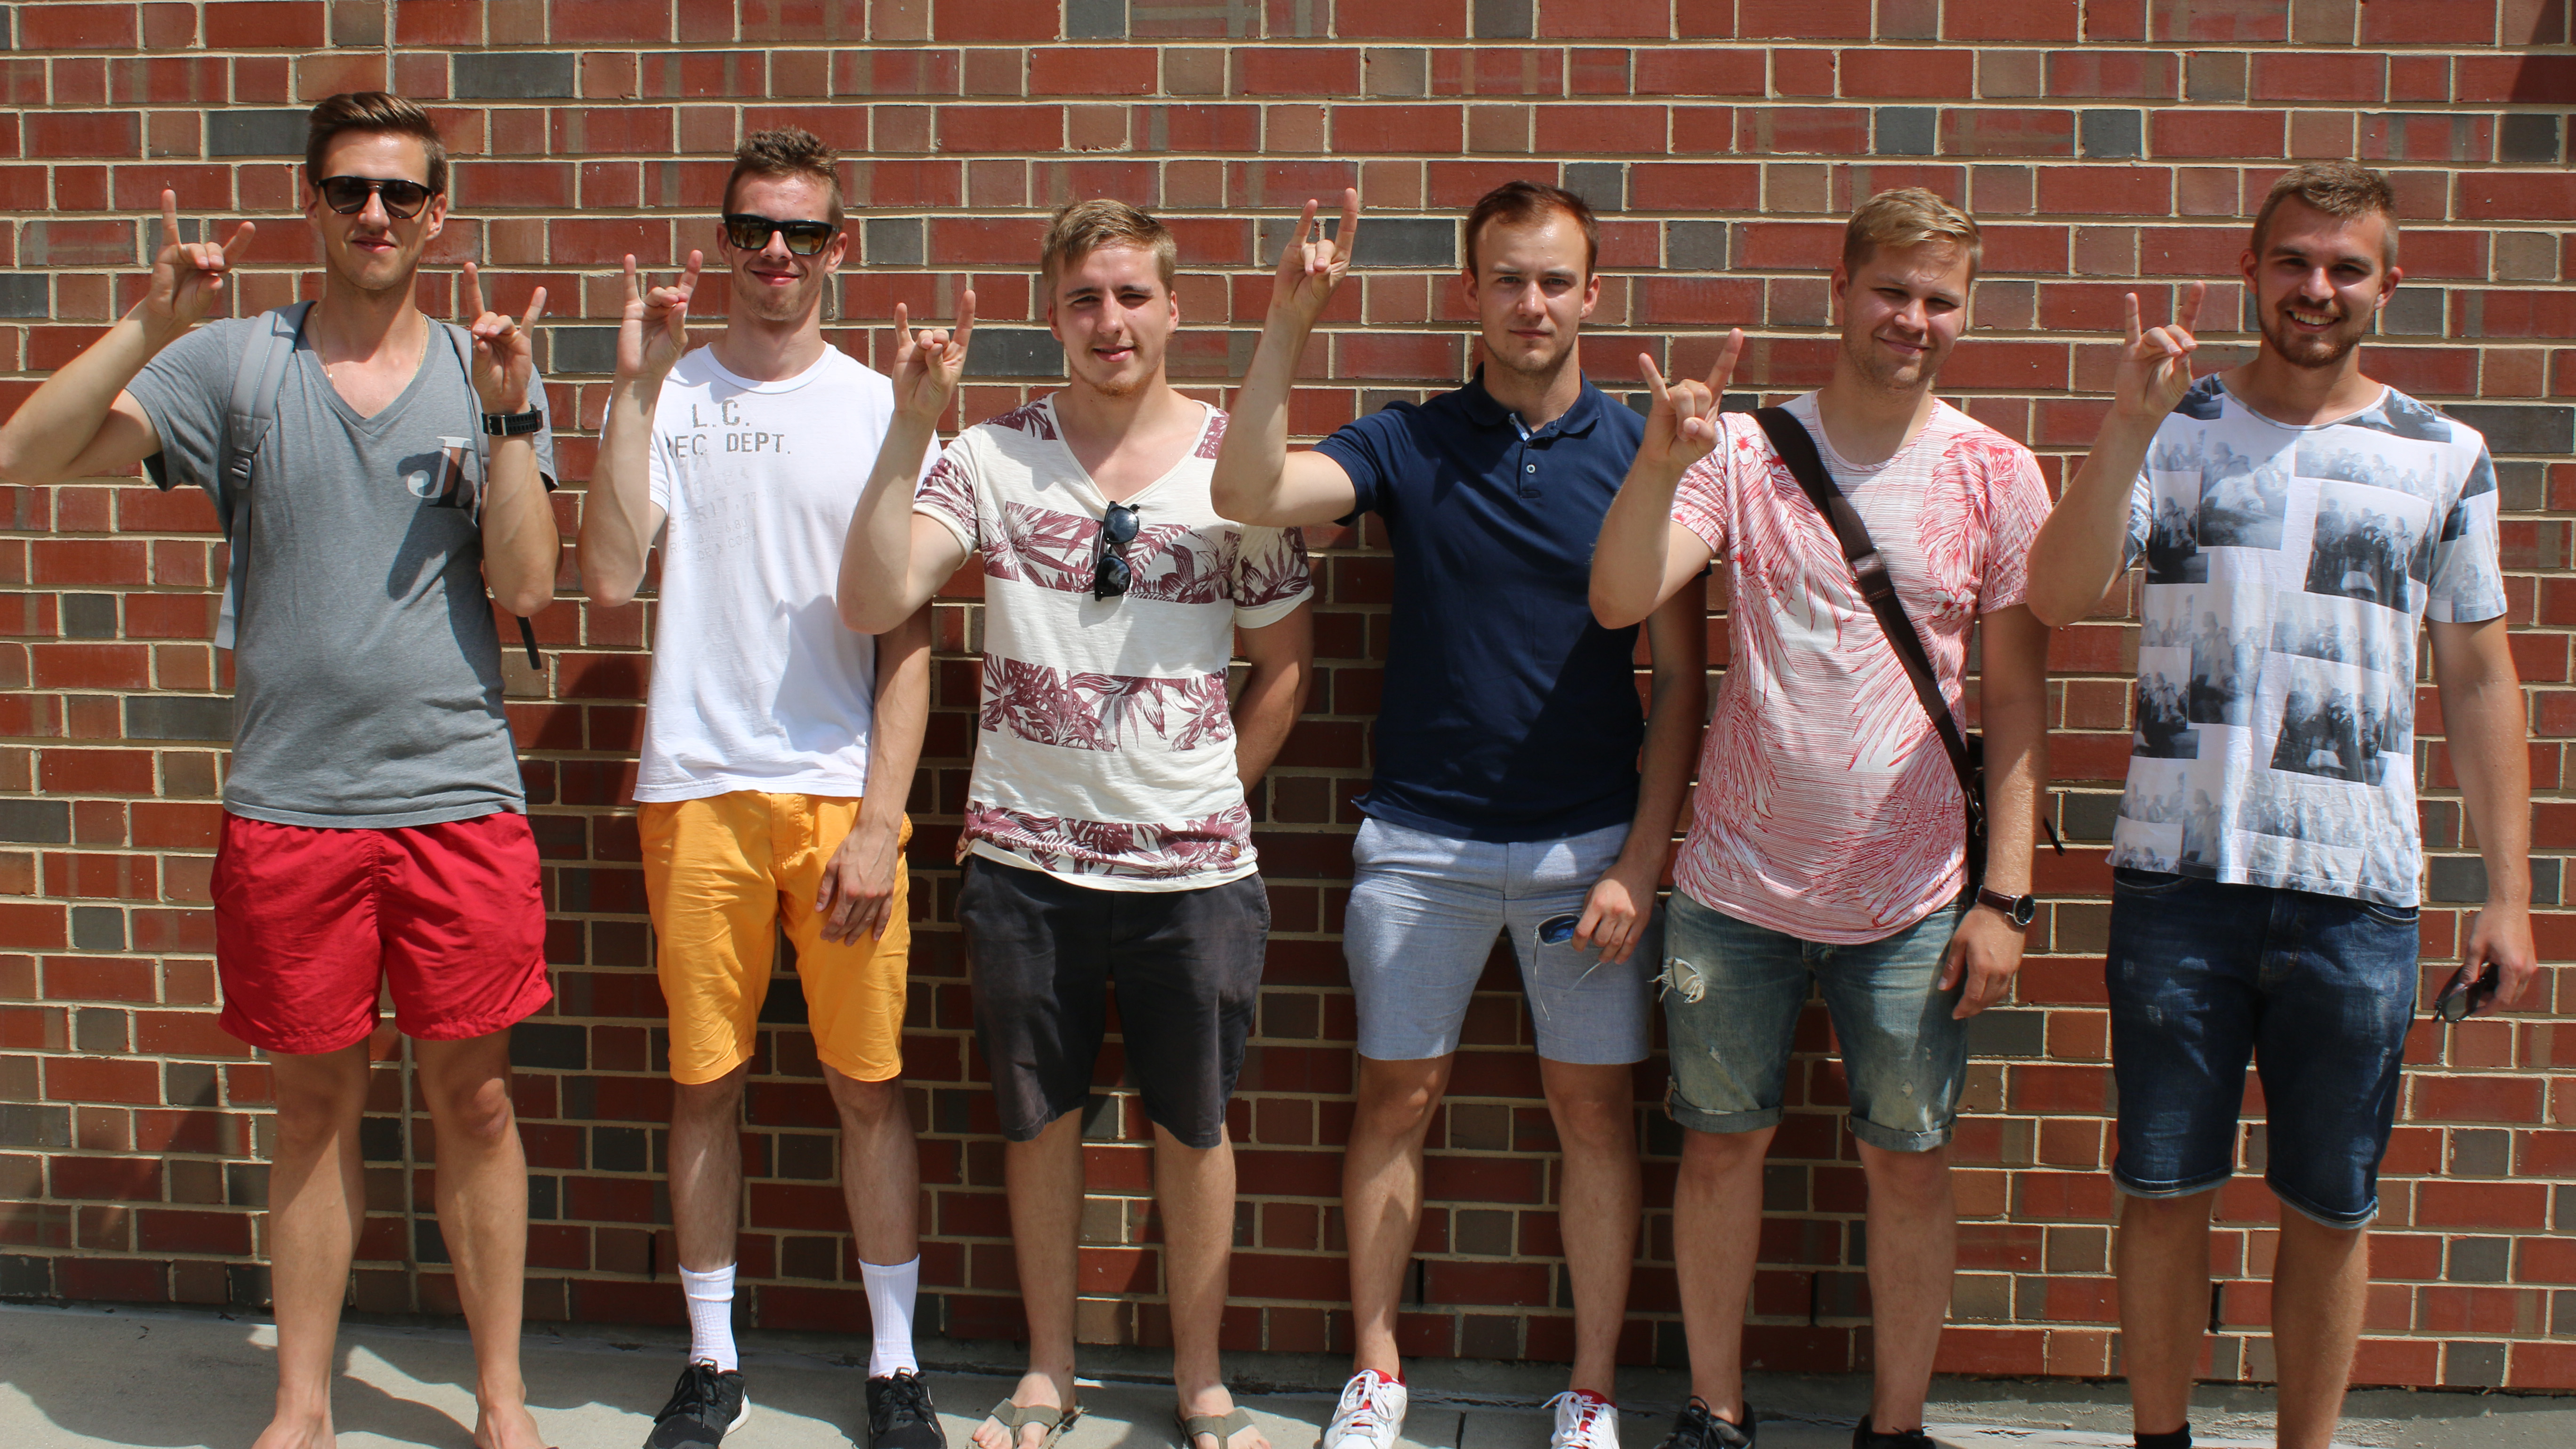 Exchange students from Finland